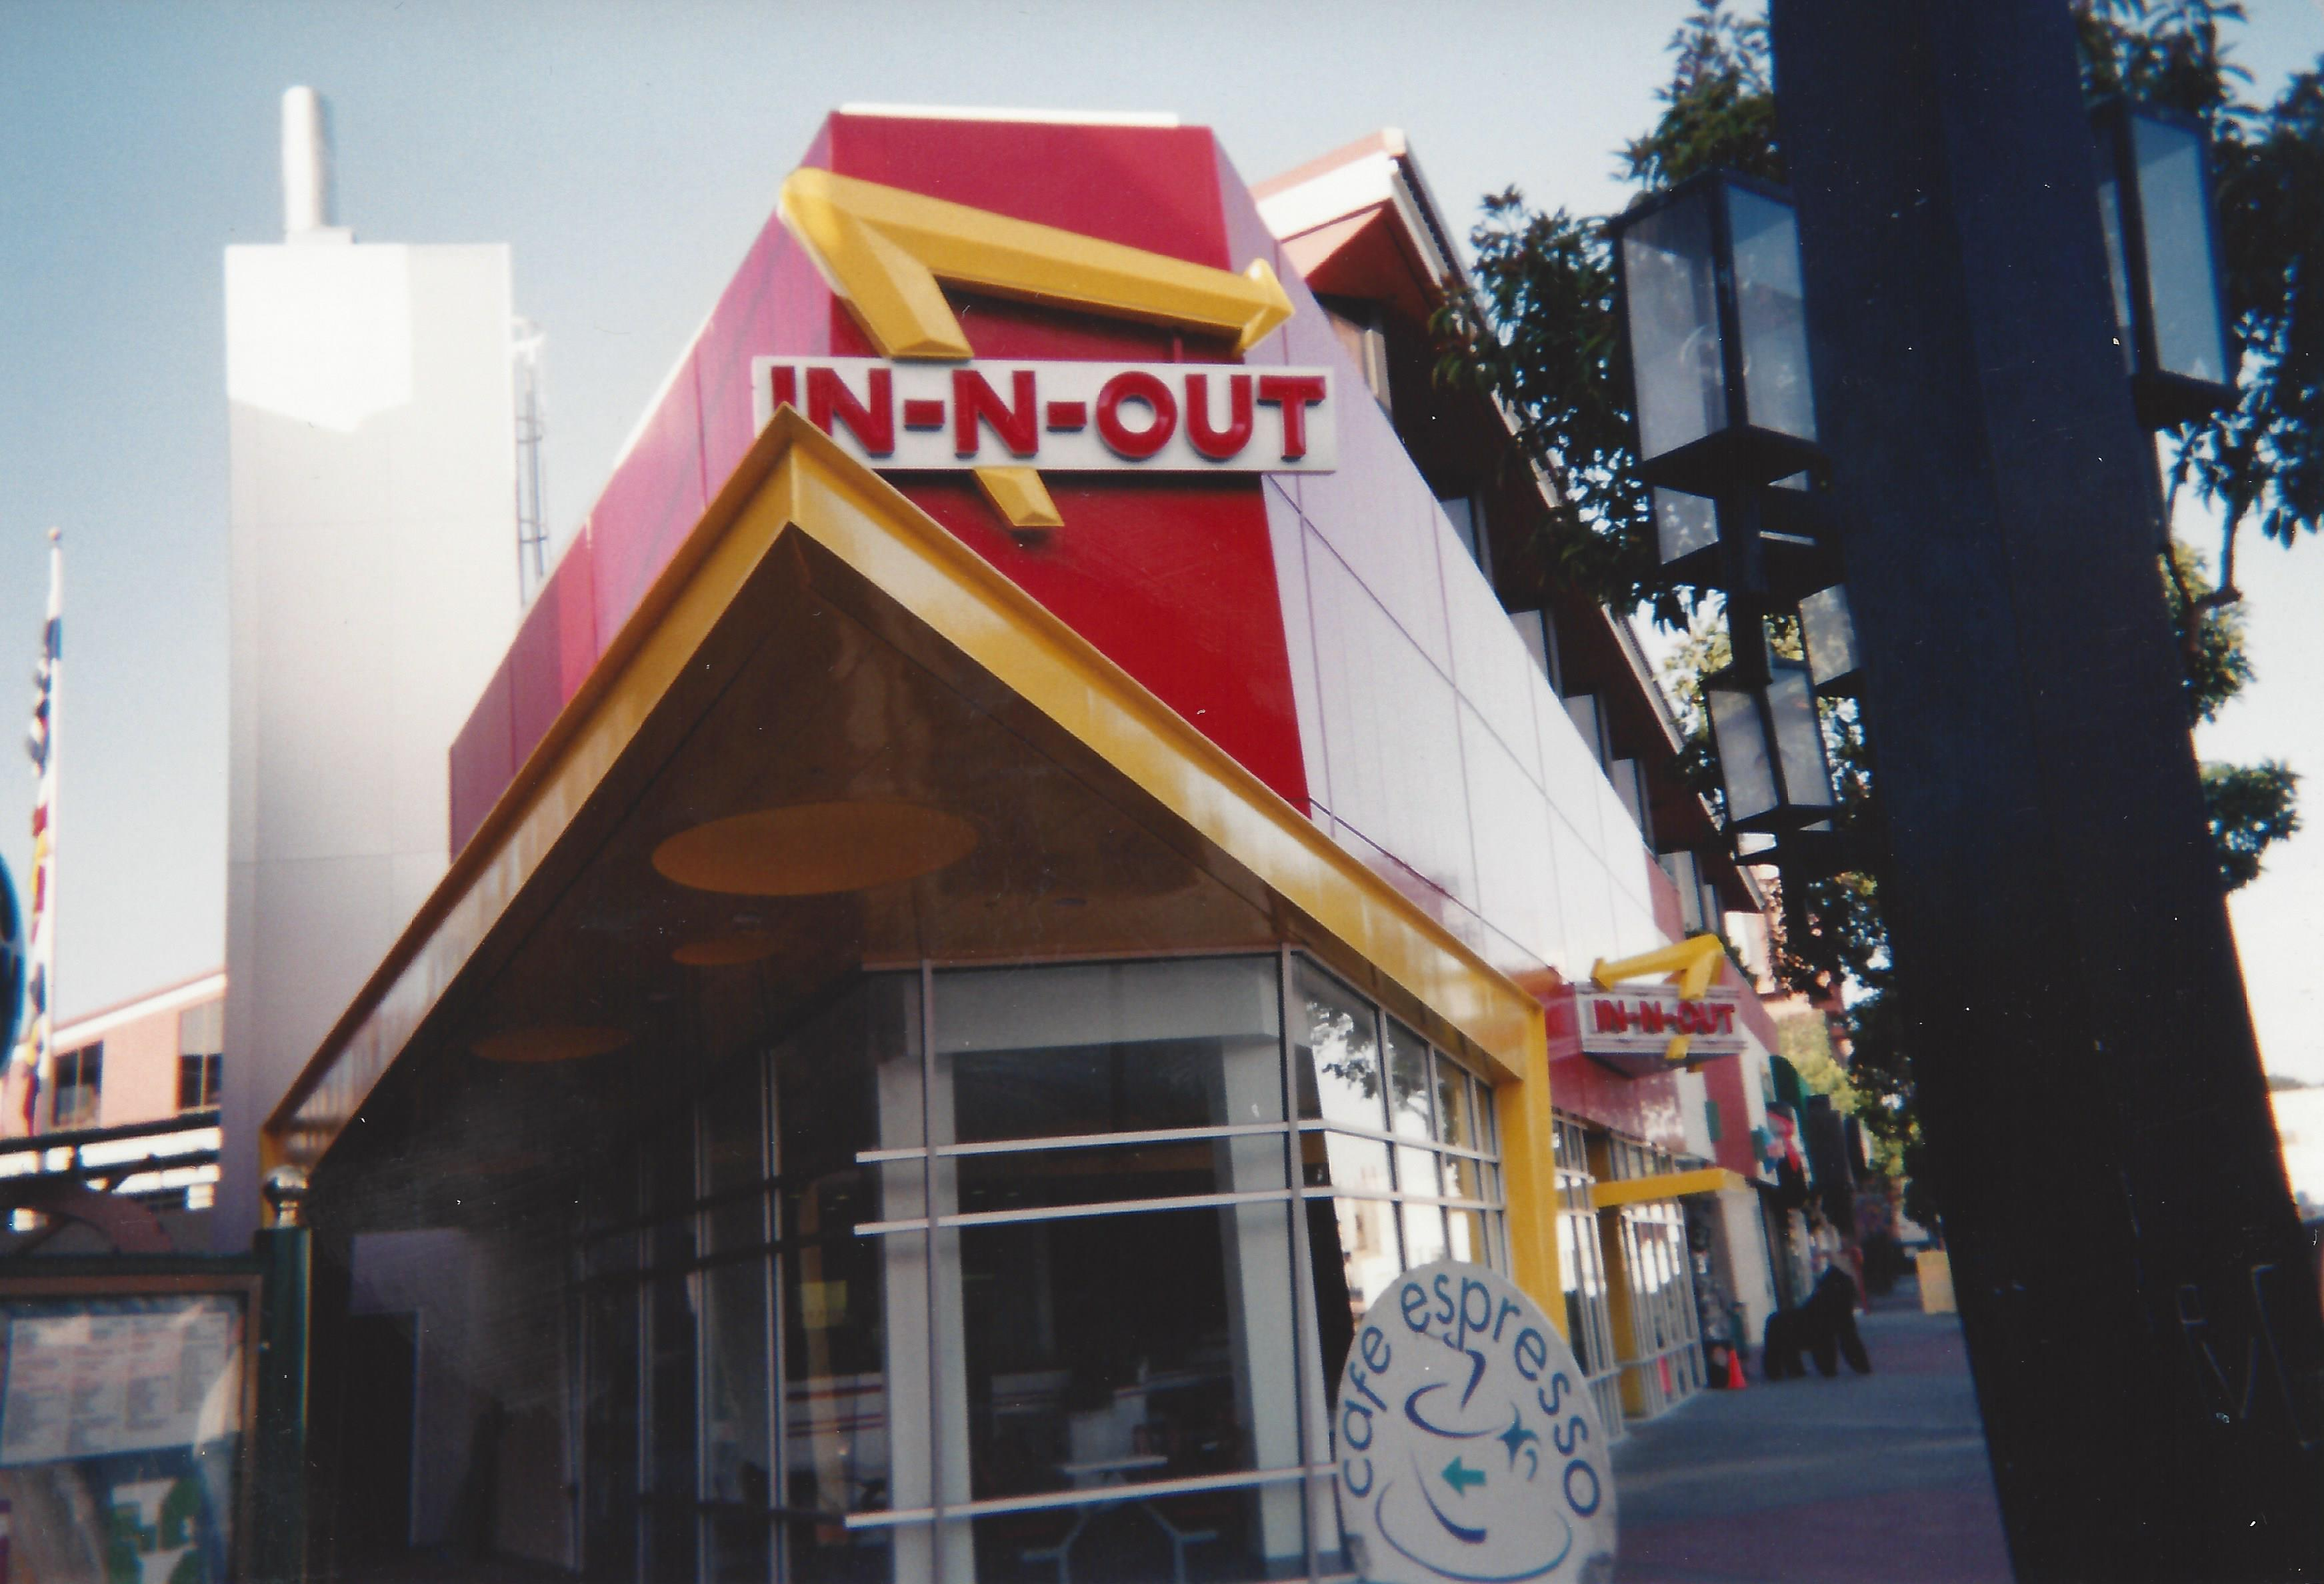 In-N-Out Burger Fisherman's Wharf San Fransisco